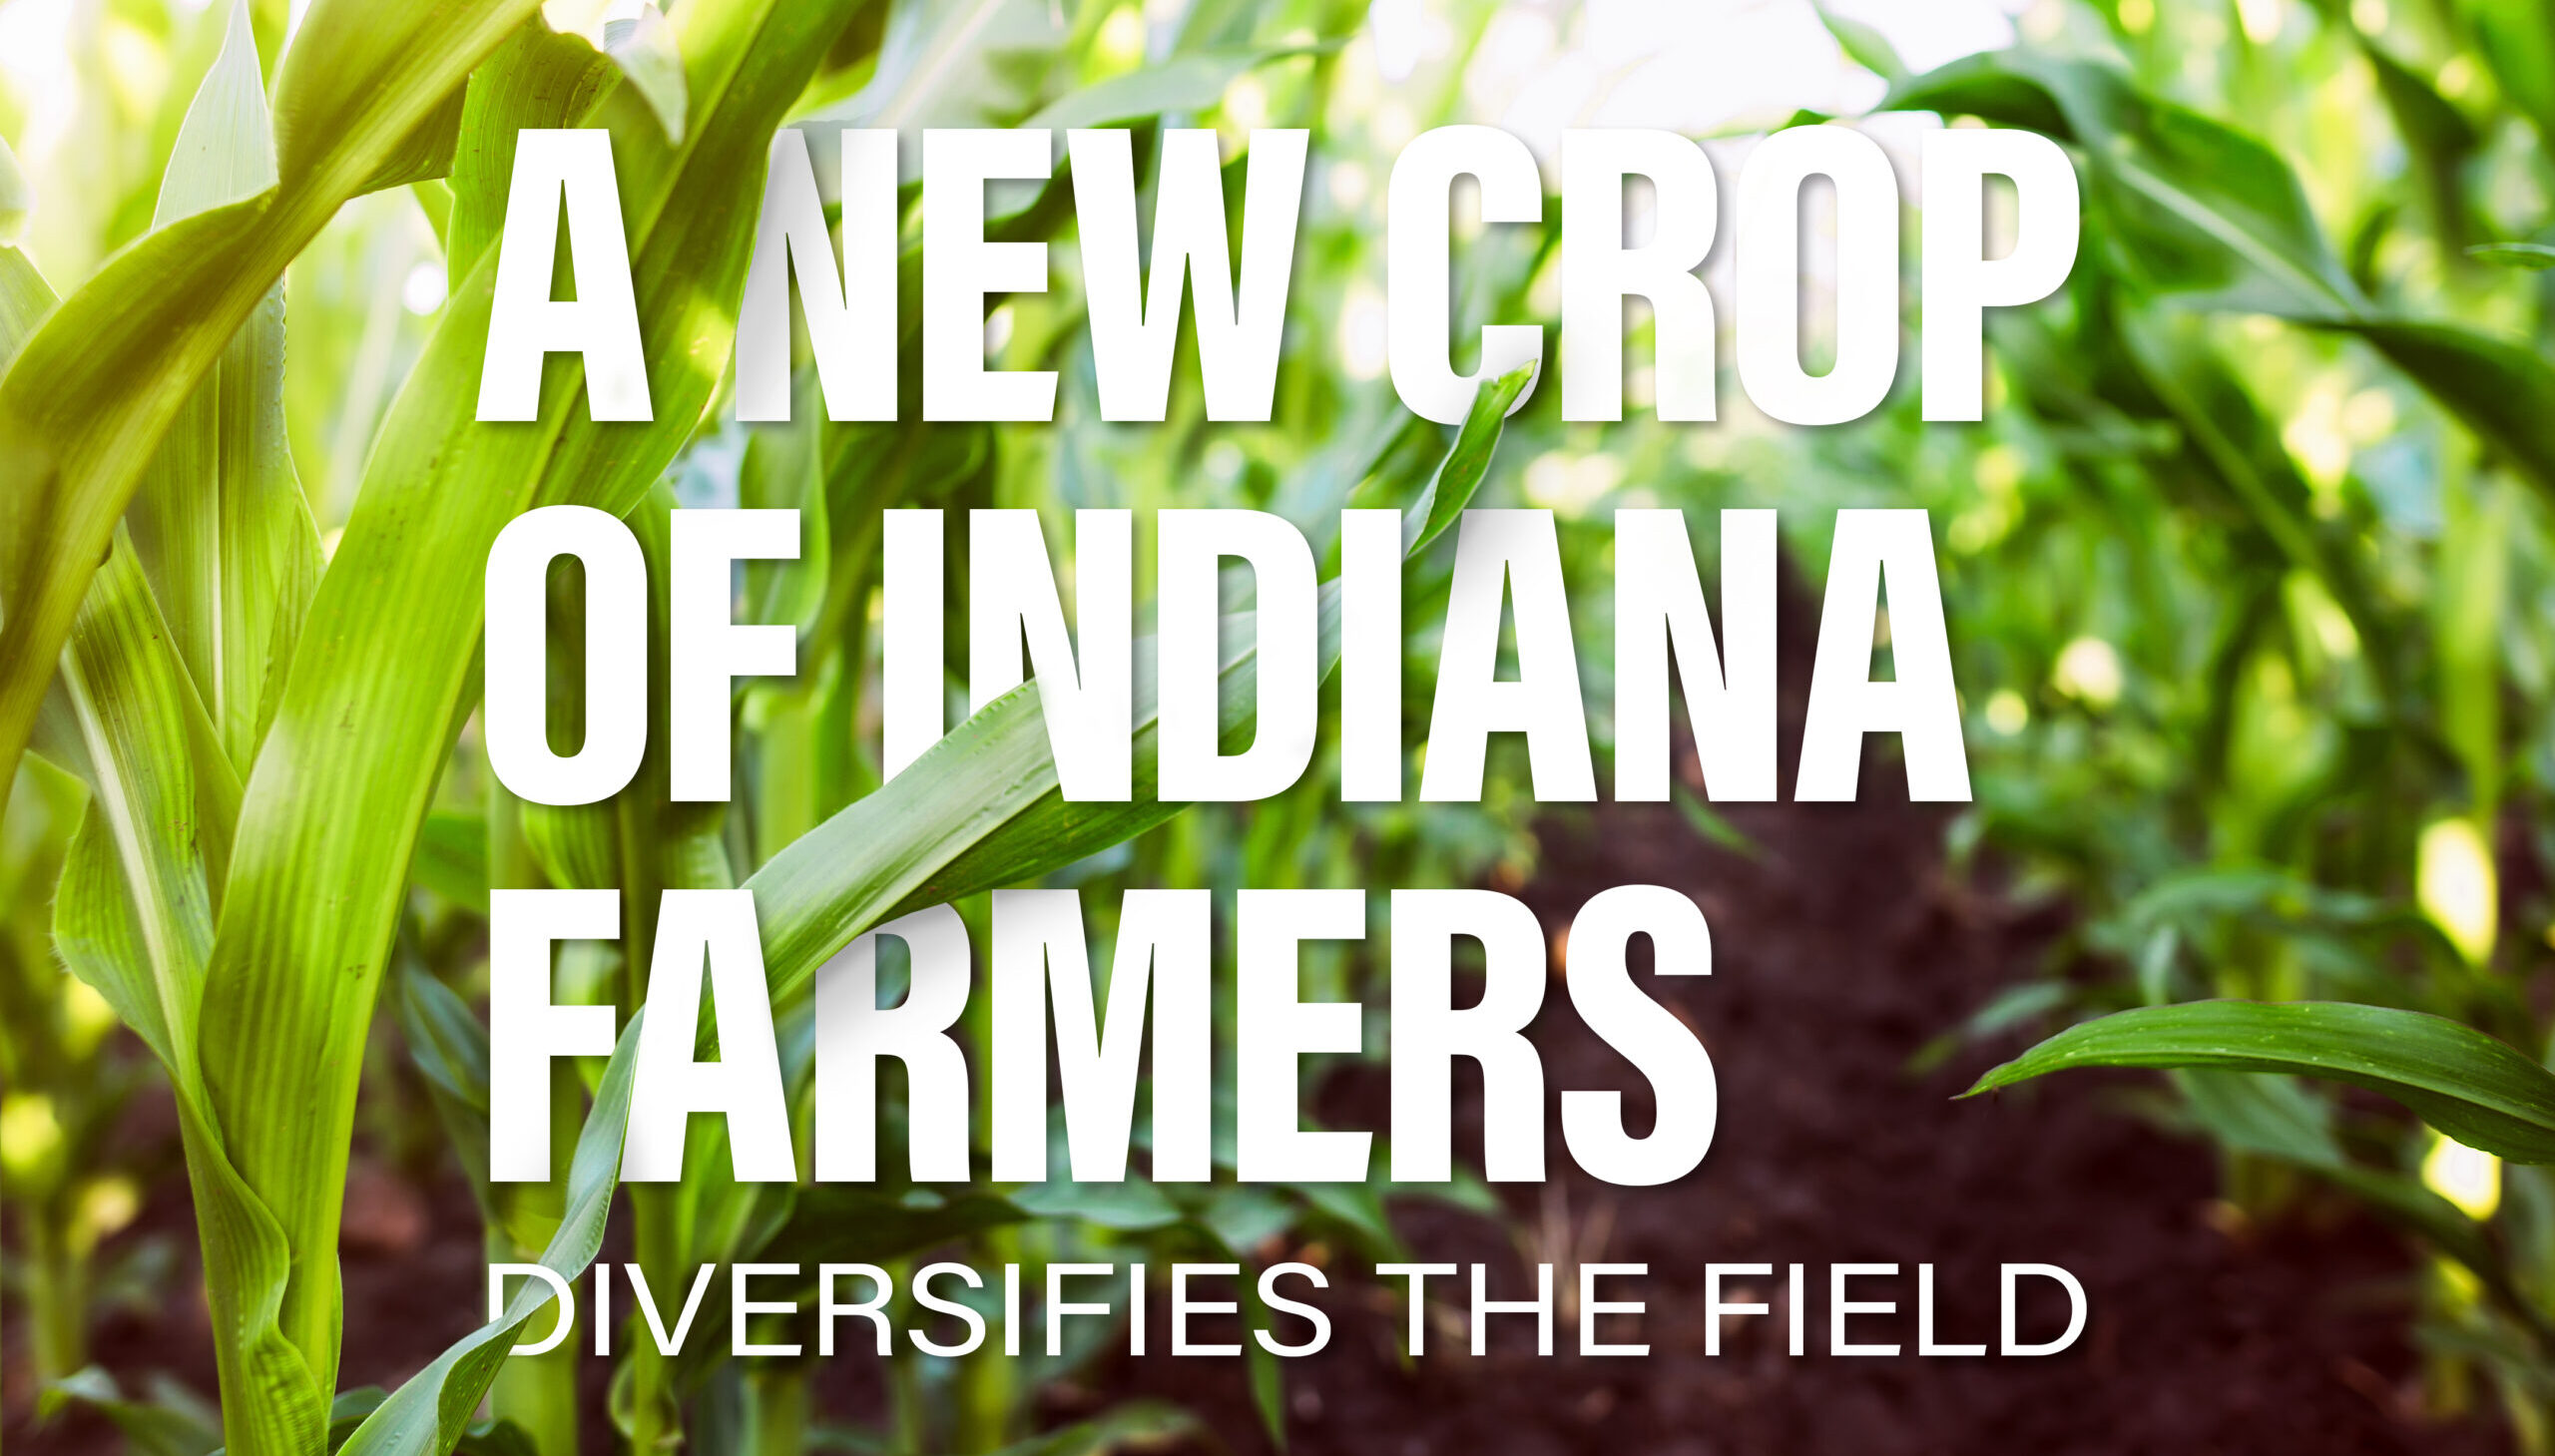 A New Crop of Indiana Farmers Diversifies the Field